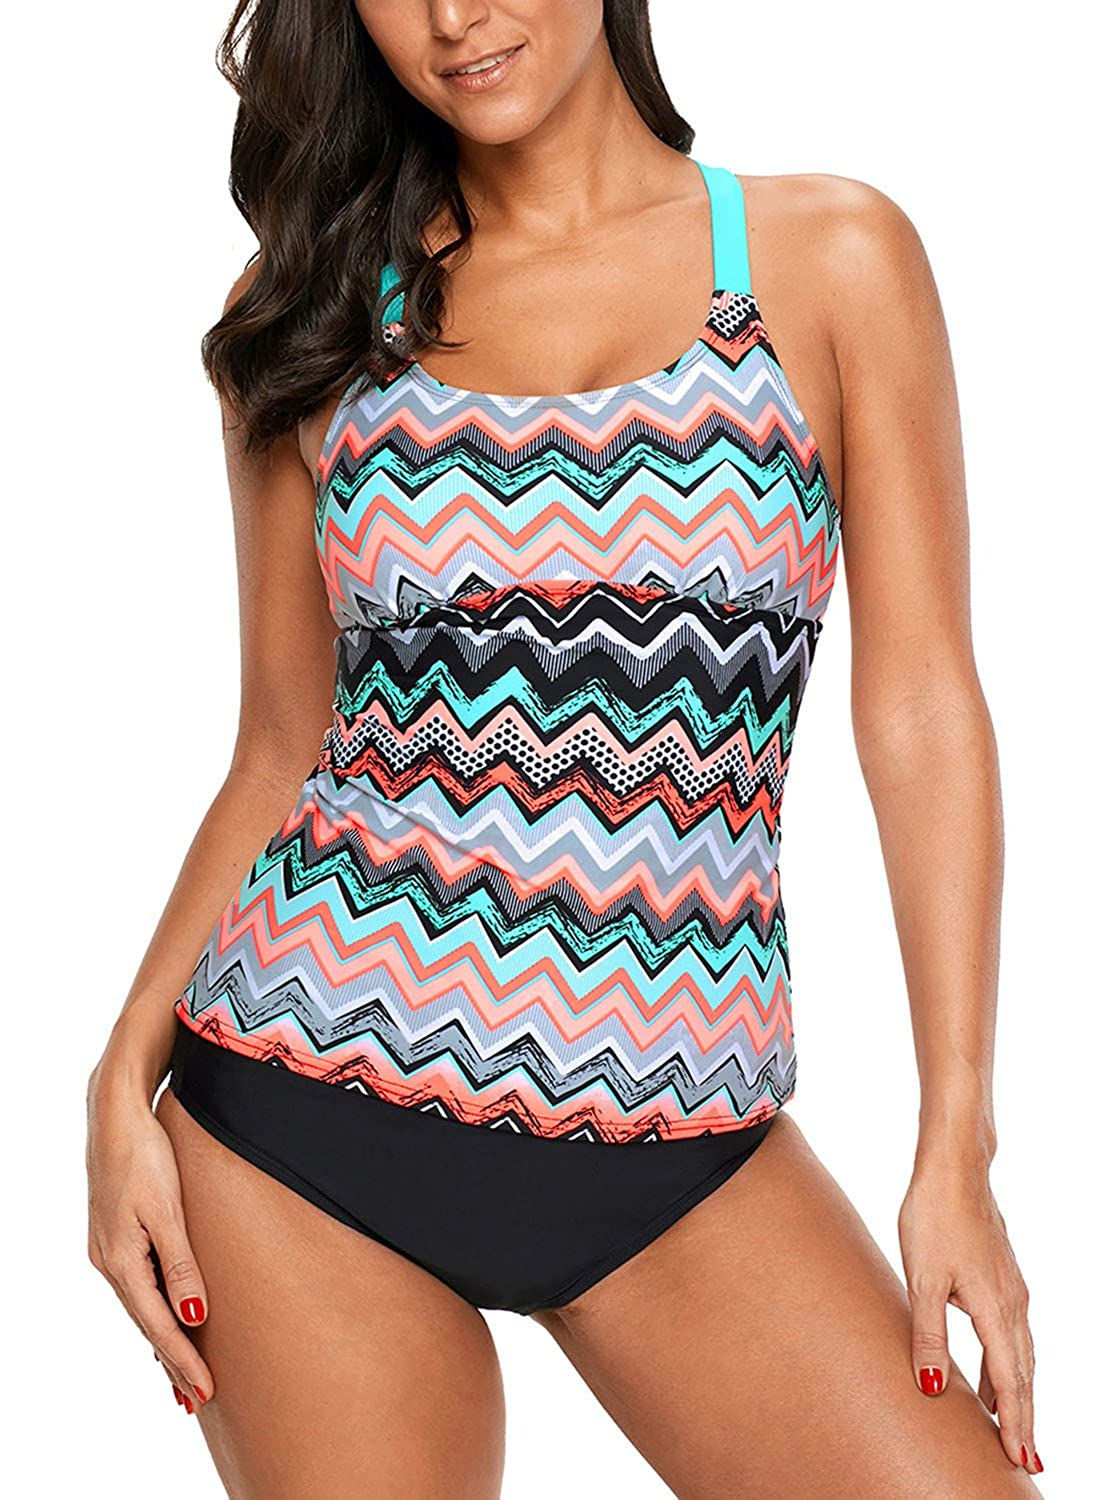 f1b92189e0d Amazon.com: Aleumdr Womens Striped Printed Strappy Racerback Tankini Swim  Top No Bottom S - XXXL: Clothing